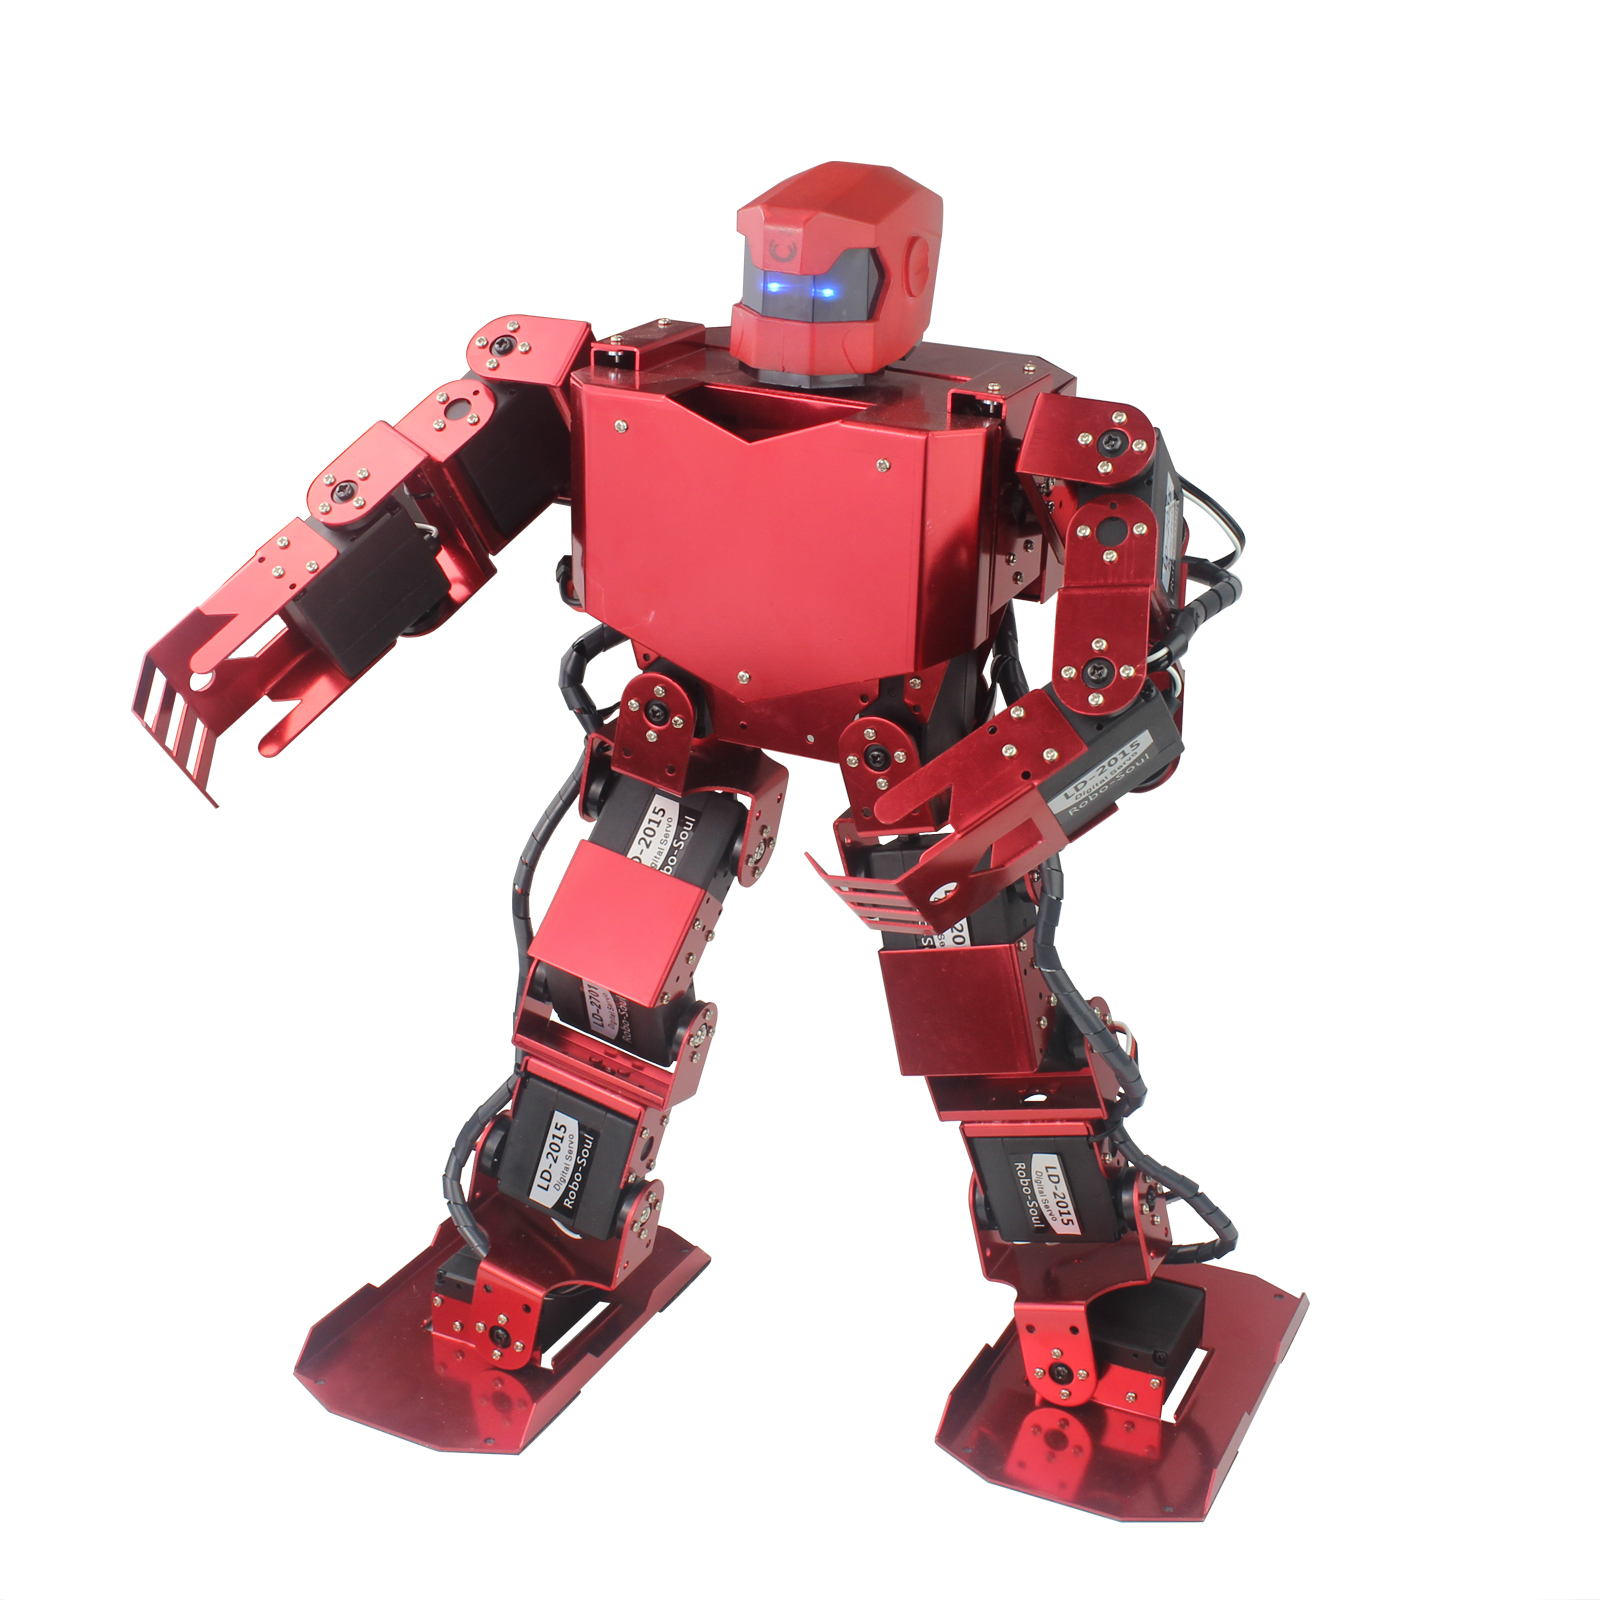 16DOF Robo-Soul H3s Biped Robotics Two Leg Human Robot Aluminum Frame Kit with Servos & Helmet Unassembled olly white or red new 17 degrees of freedom humanoid biped robot teaching and research biped robot platform model no electronic control system